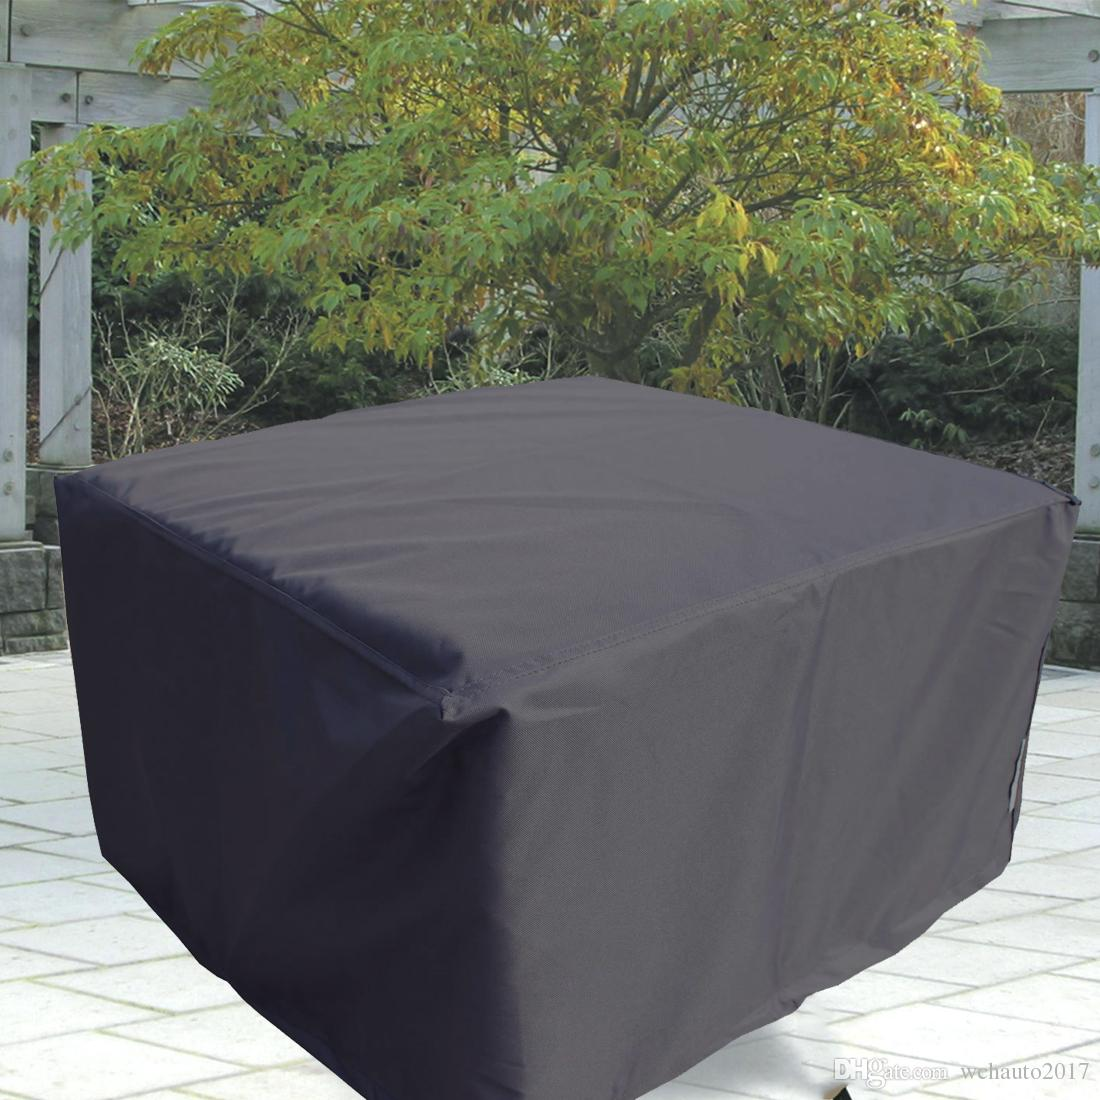 2019 135x135x75cm Patio Table Cover Square Waterproof Outdoor Dust Proof  53inTable Desk Furniture Covers With Storage Bags For Garden Indoor From ... - 2019 135x135x75cm Patio Table Cover Square Waterproof Outdoor Dust